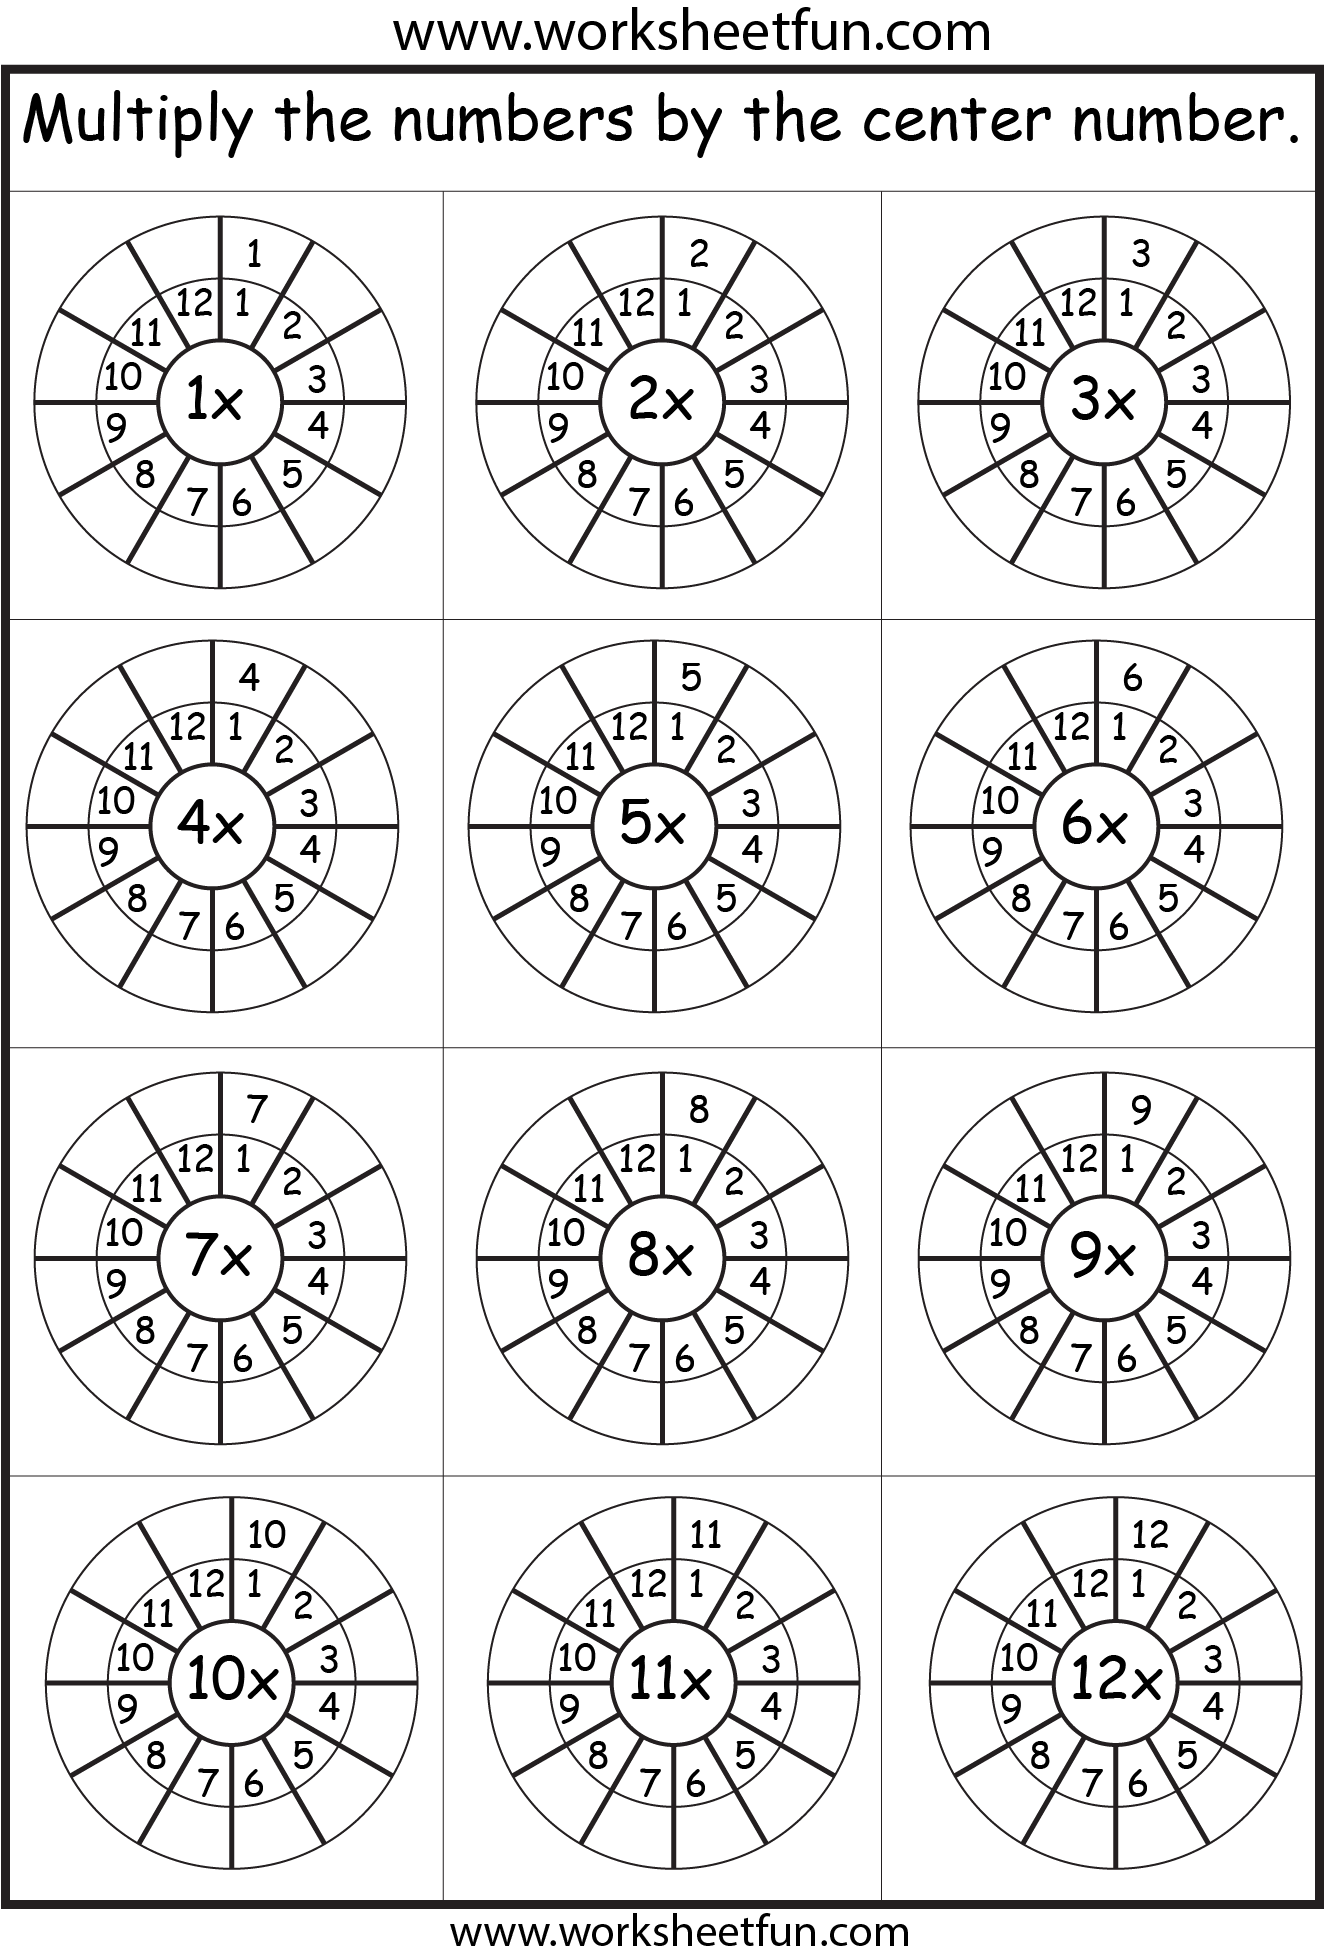 worksheet Fun Multiplication Worksheets Grade 3 times table 2 12 worksheets 1 3 4 5 6 7 8 9 10 11 table